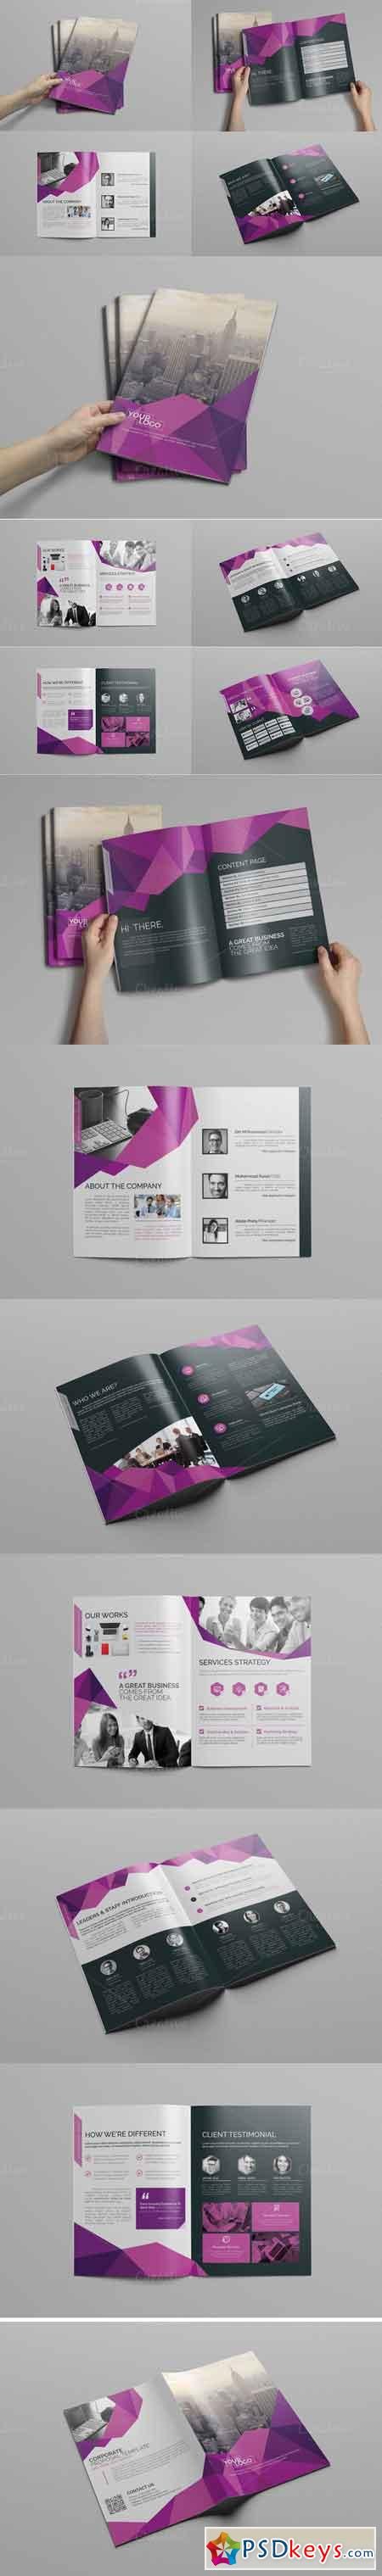 Abstract Bi fold Brochure-16 Pages 609663